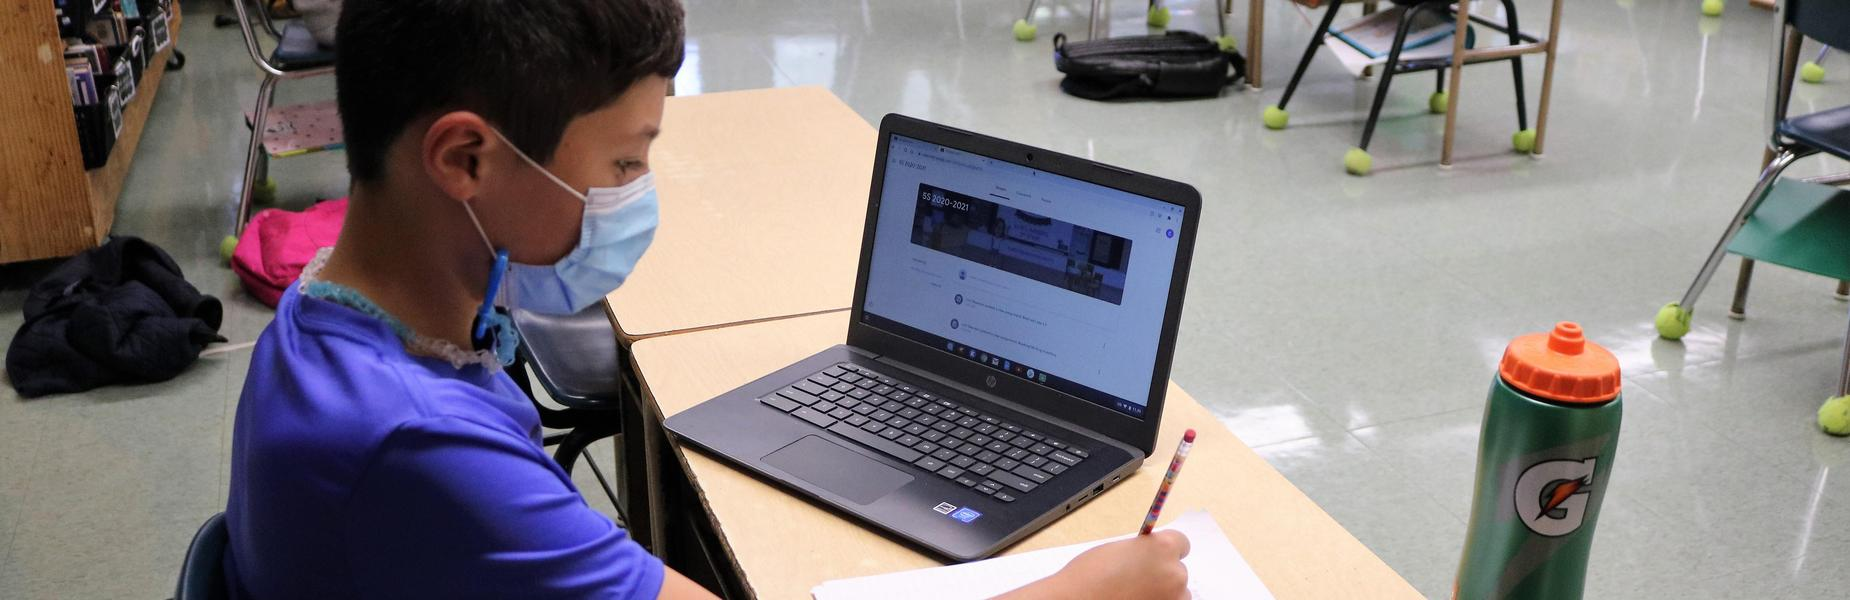 Photo of Tamaques student at desk with laptop and paper and pencil.